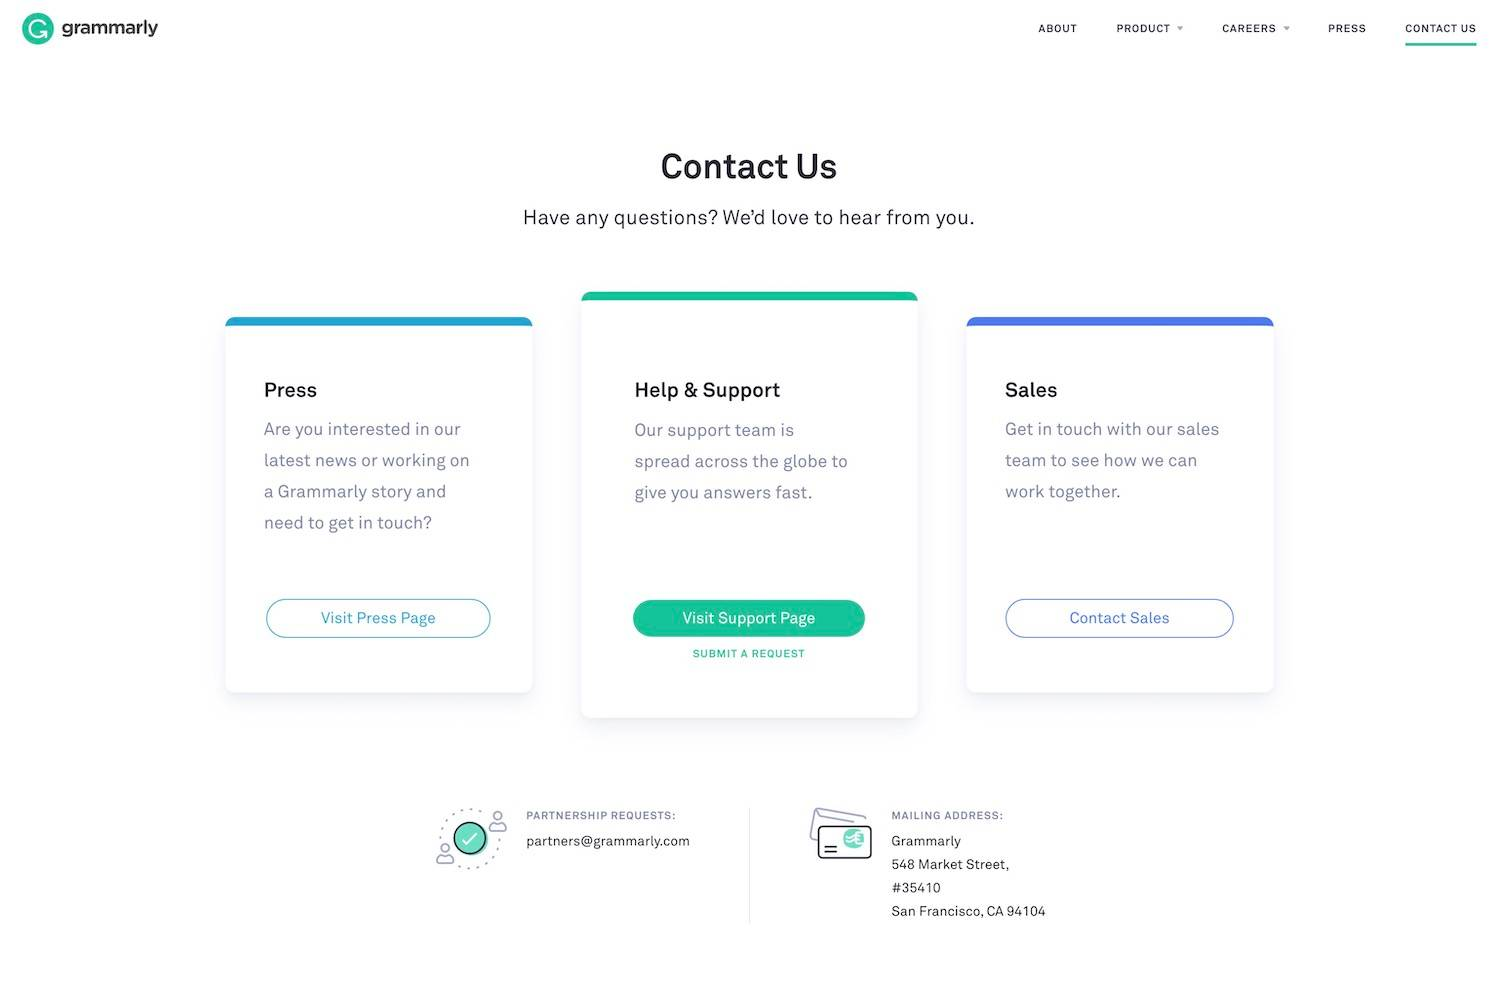 Grammarly best contact page examples